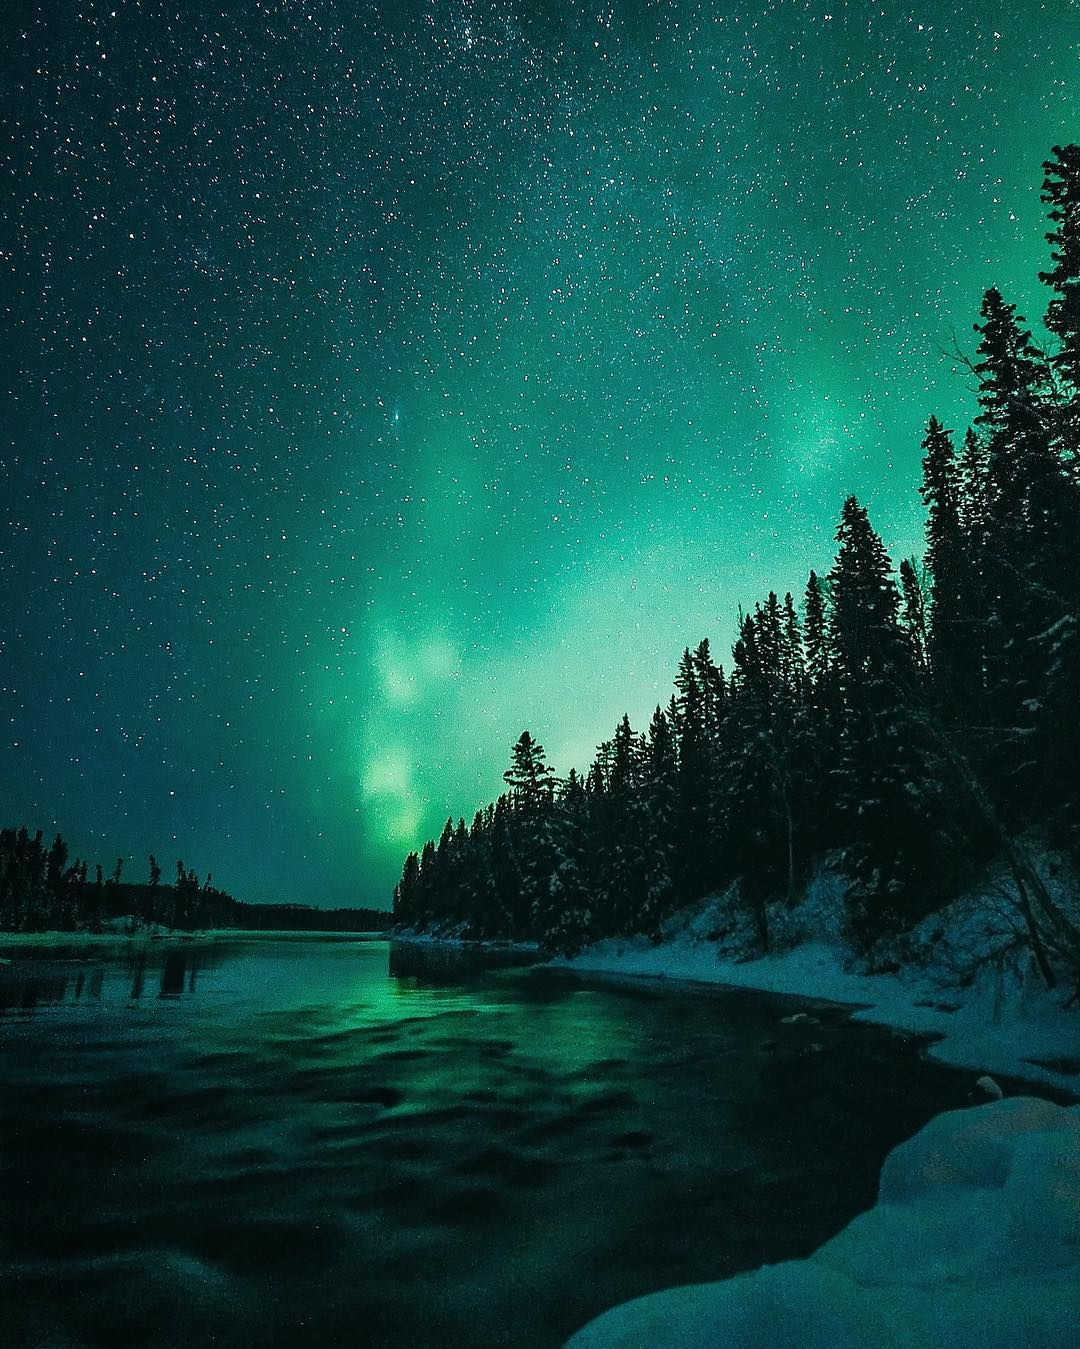 Computer Wallpaper Canada: Incredible Night Landscape Photography By Andre Brandt